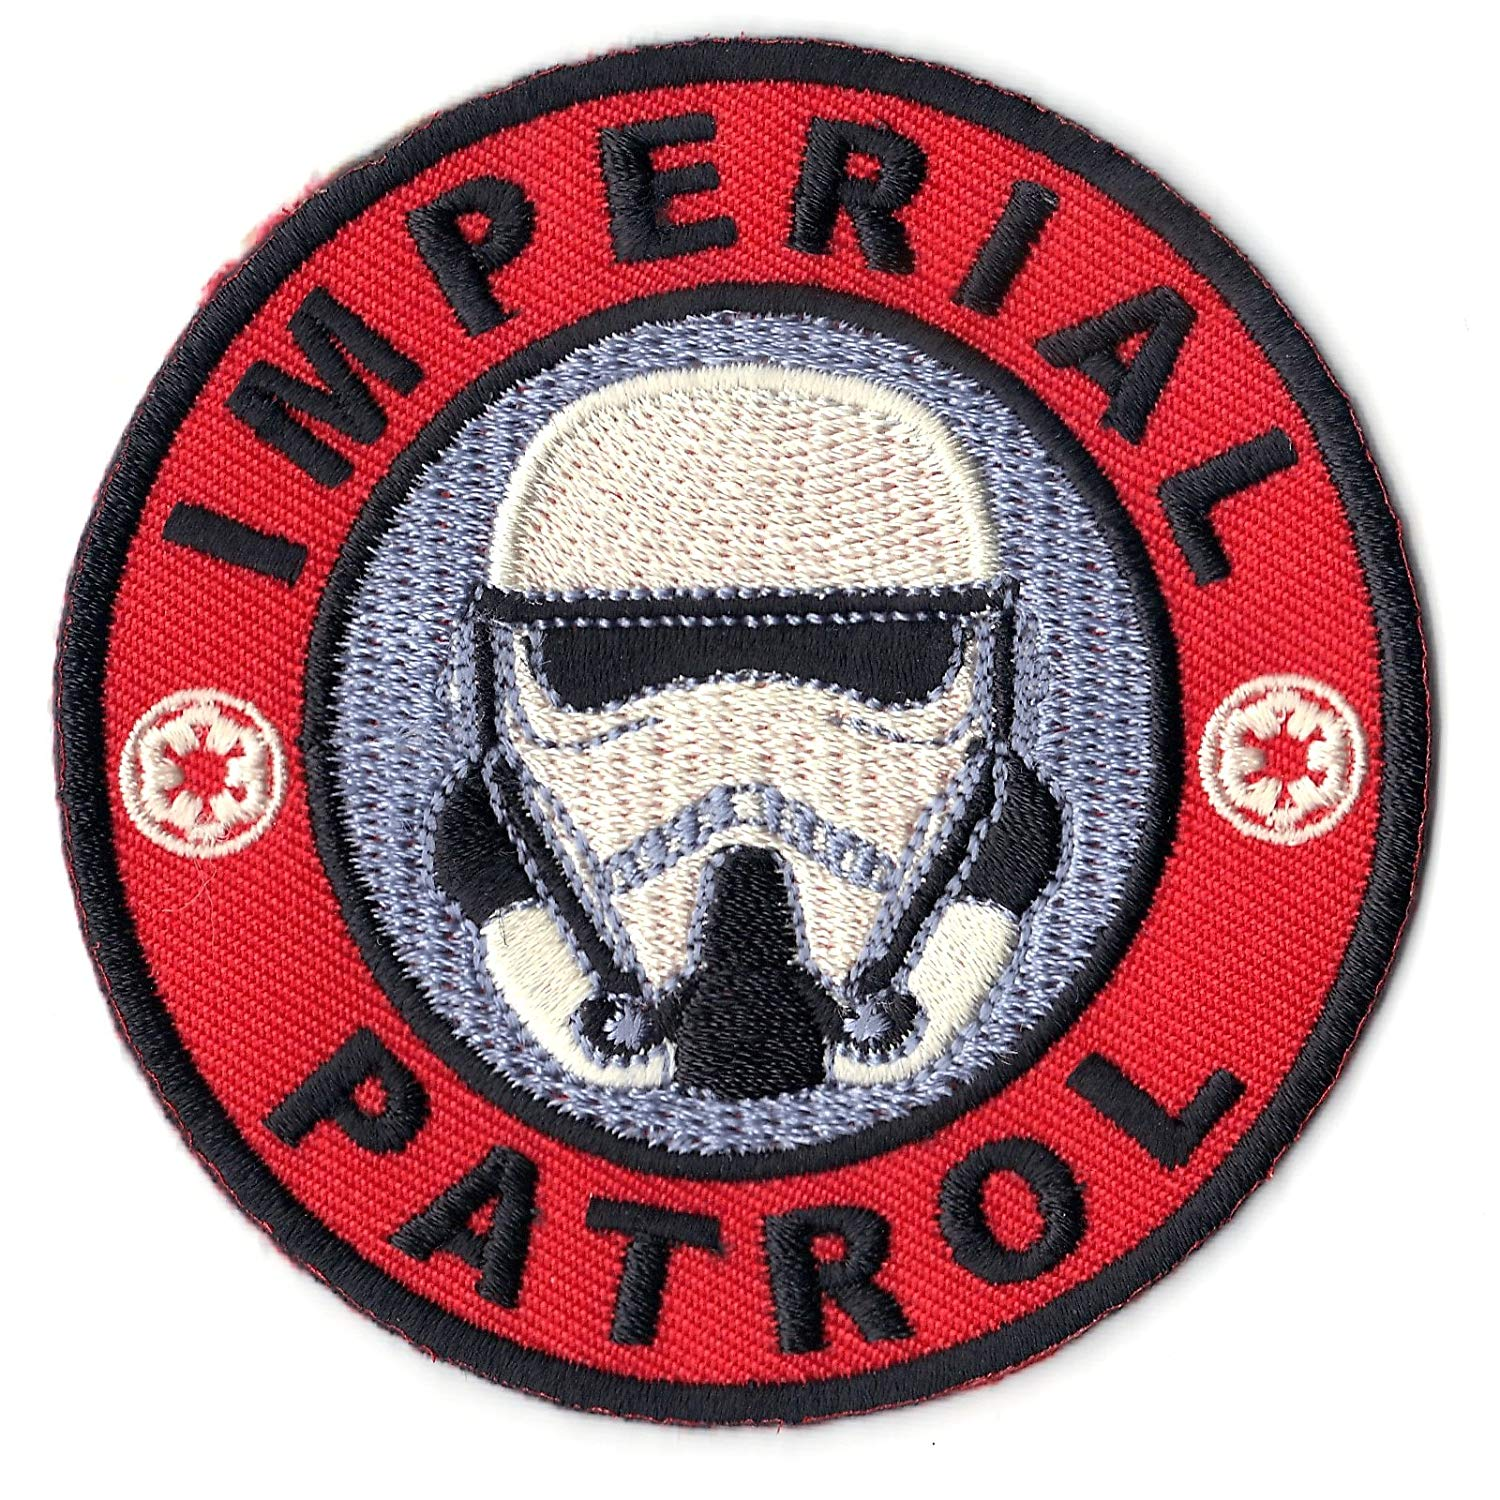 Solo: ASWS Imperial Patrol Trooper Embroidered Iron-On Patch 2